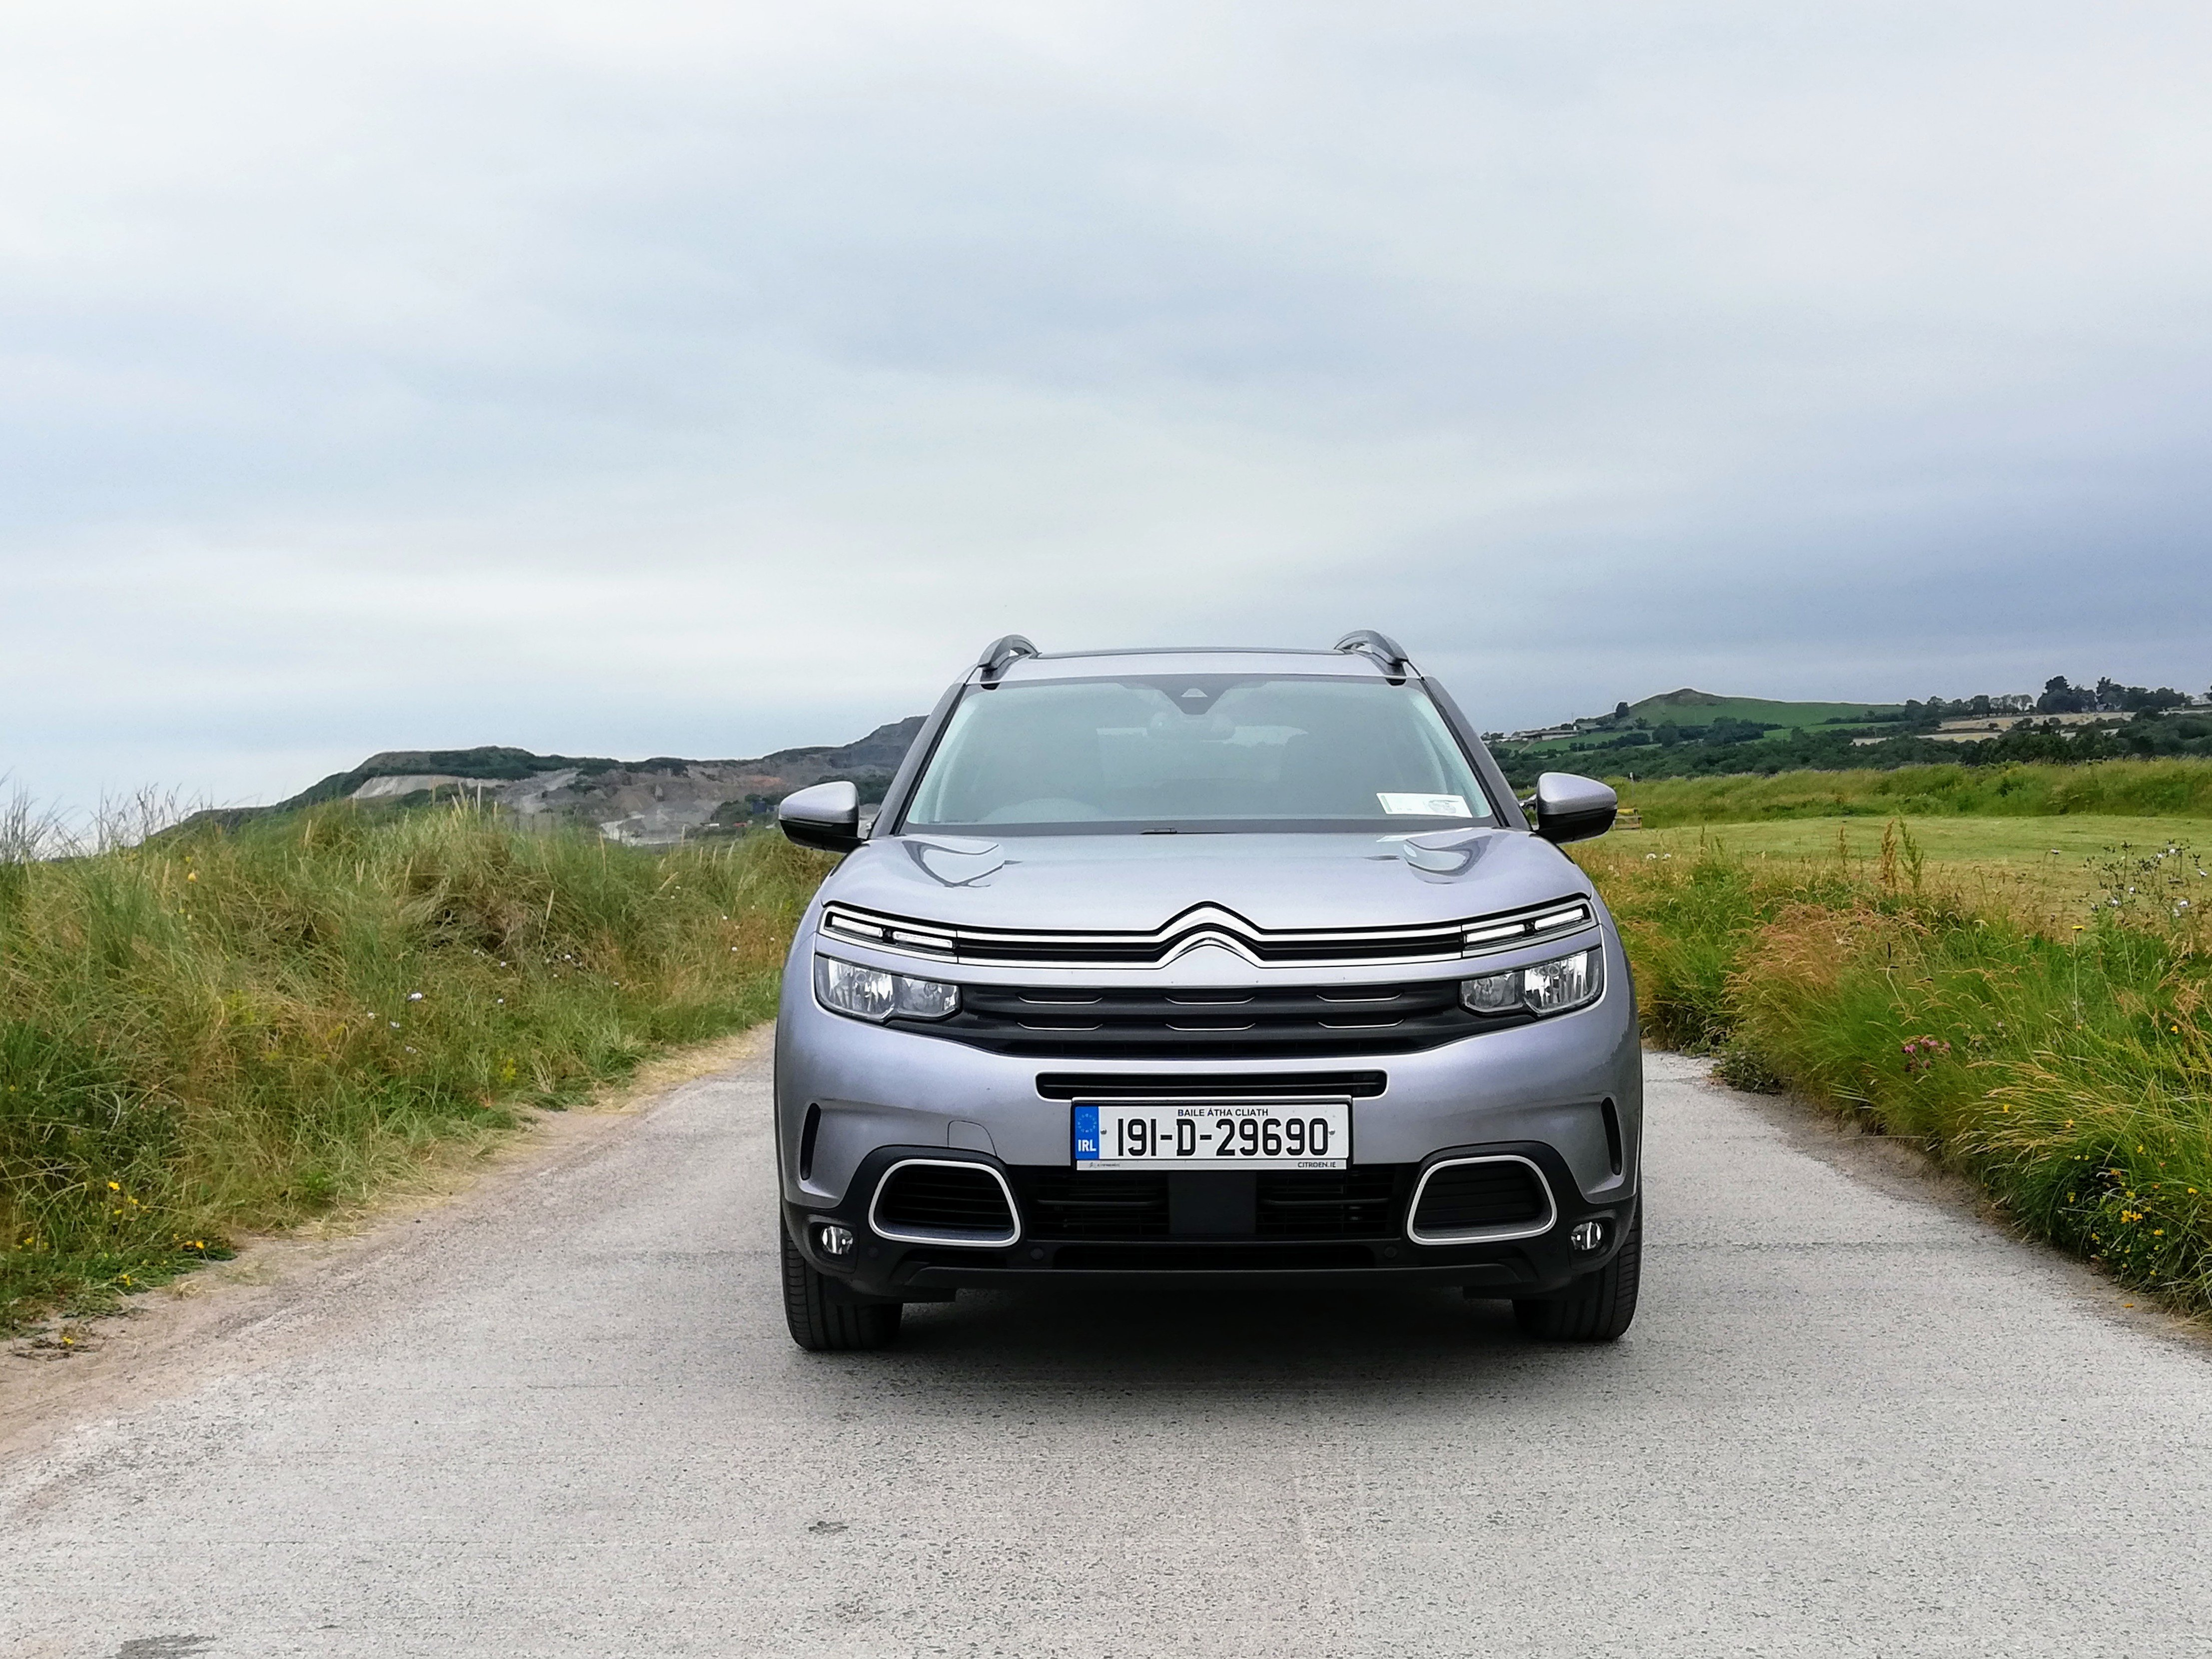 The Citroen C5 Aircross scores for comfort, space and practicality!